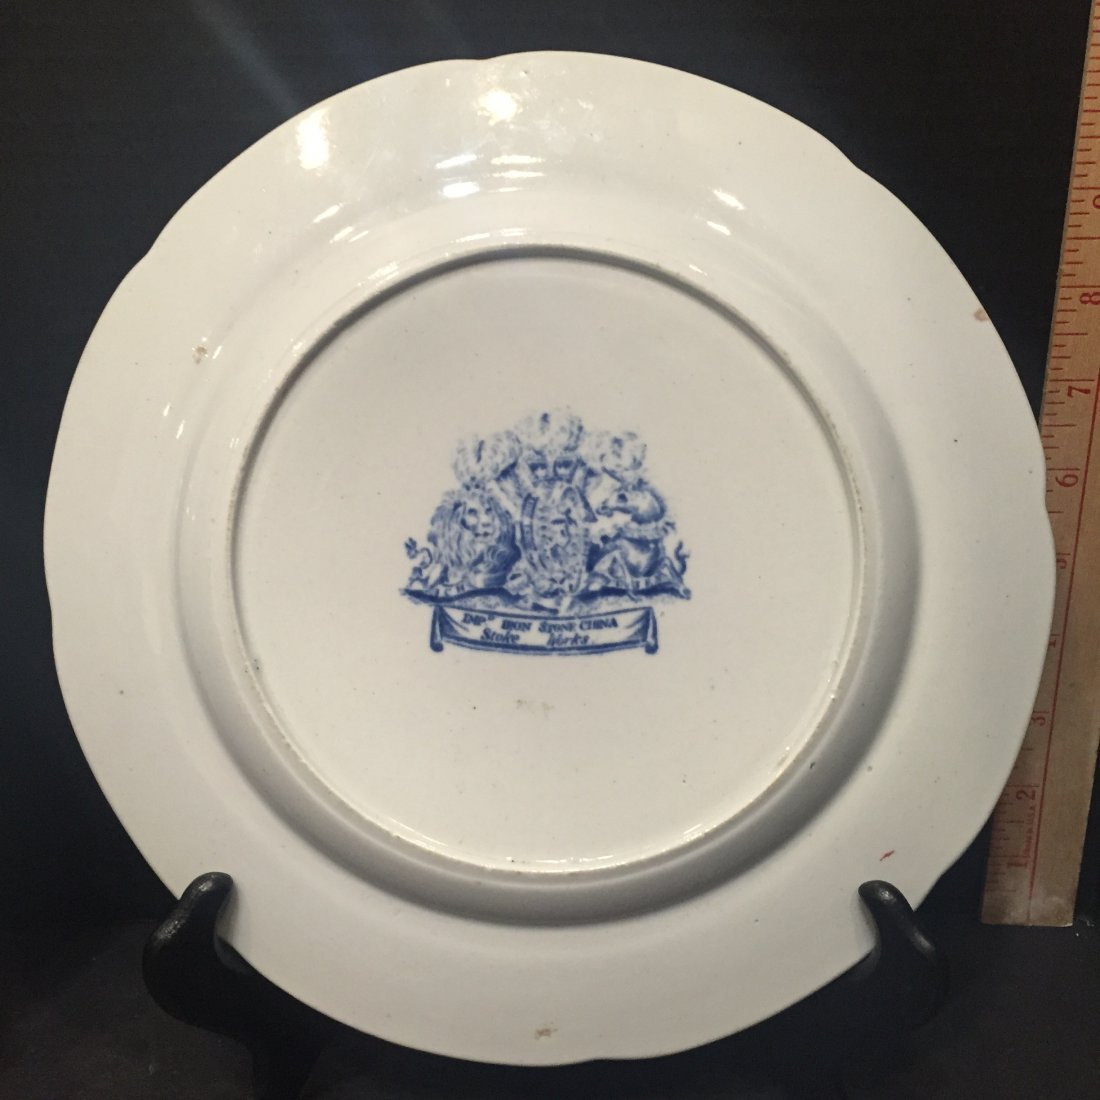 Two Ironstone Plates, One Warranted, One Stoke Works - 3